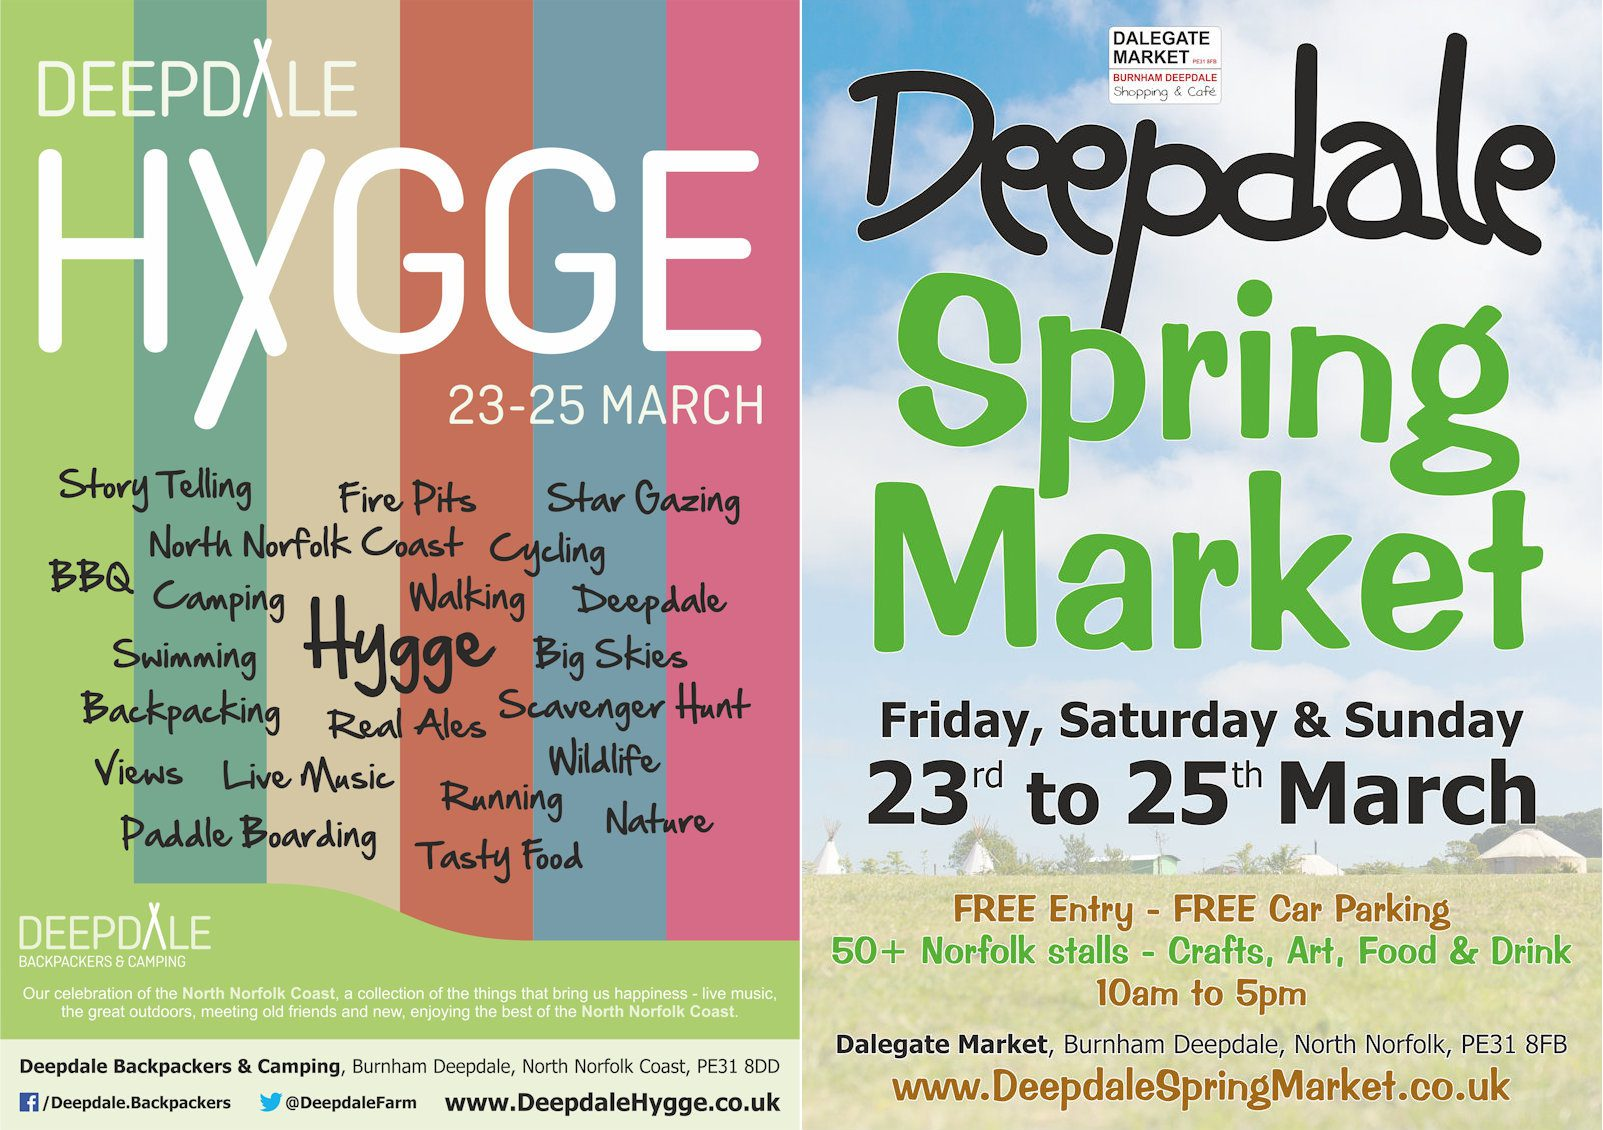 Deepdale Hygge and Deepdale Spring Market | Friday 23rd & Sunday 25th March 2018